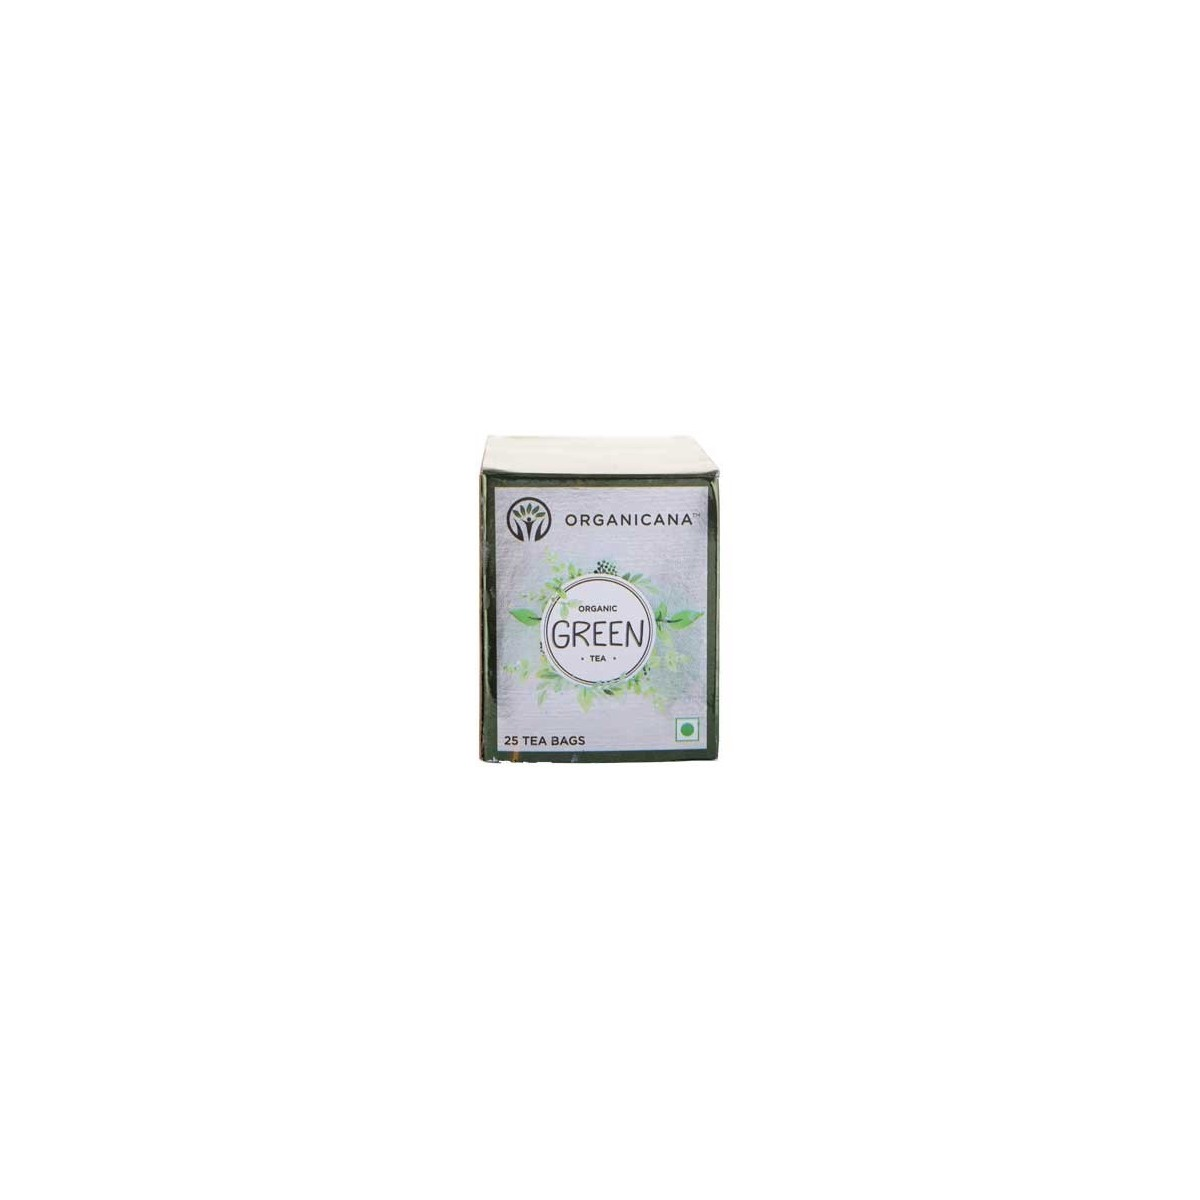 Organicana- Organic Green Tea Teabags -Regular (3 Packs X 25)